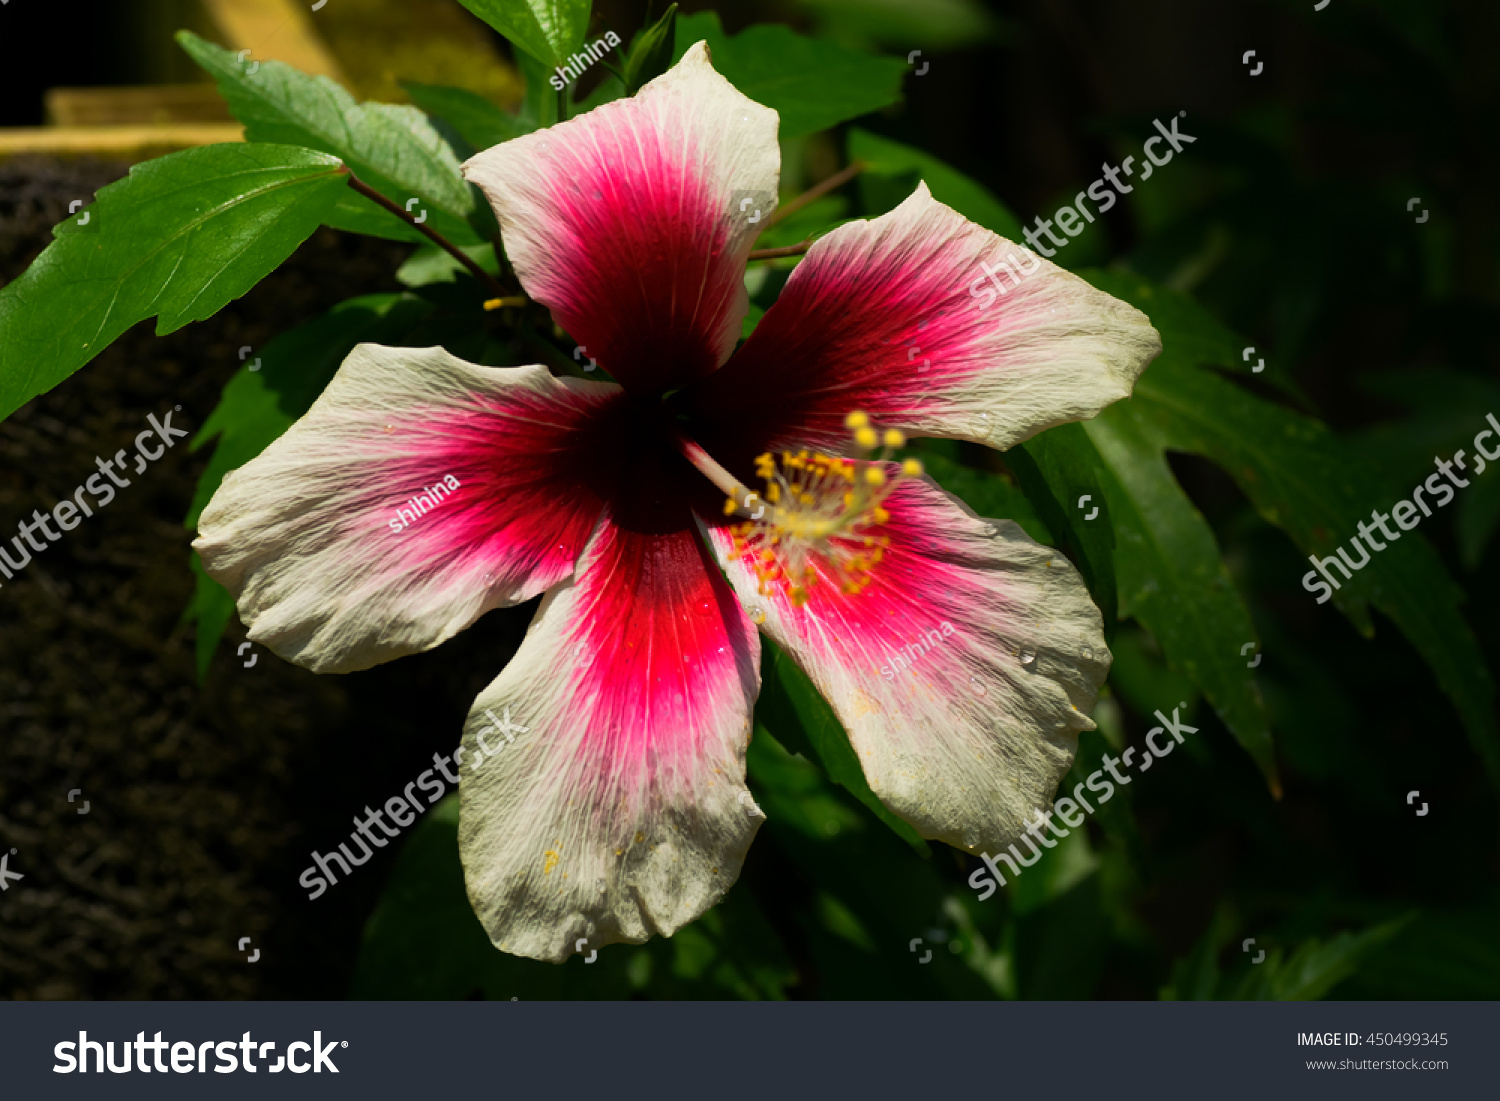 White Red Hibiscus Flower Stock Photo 450499345 - Shutterstock